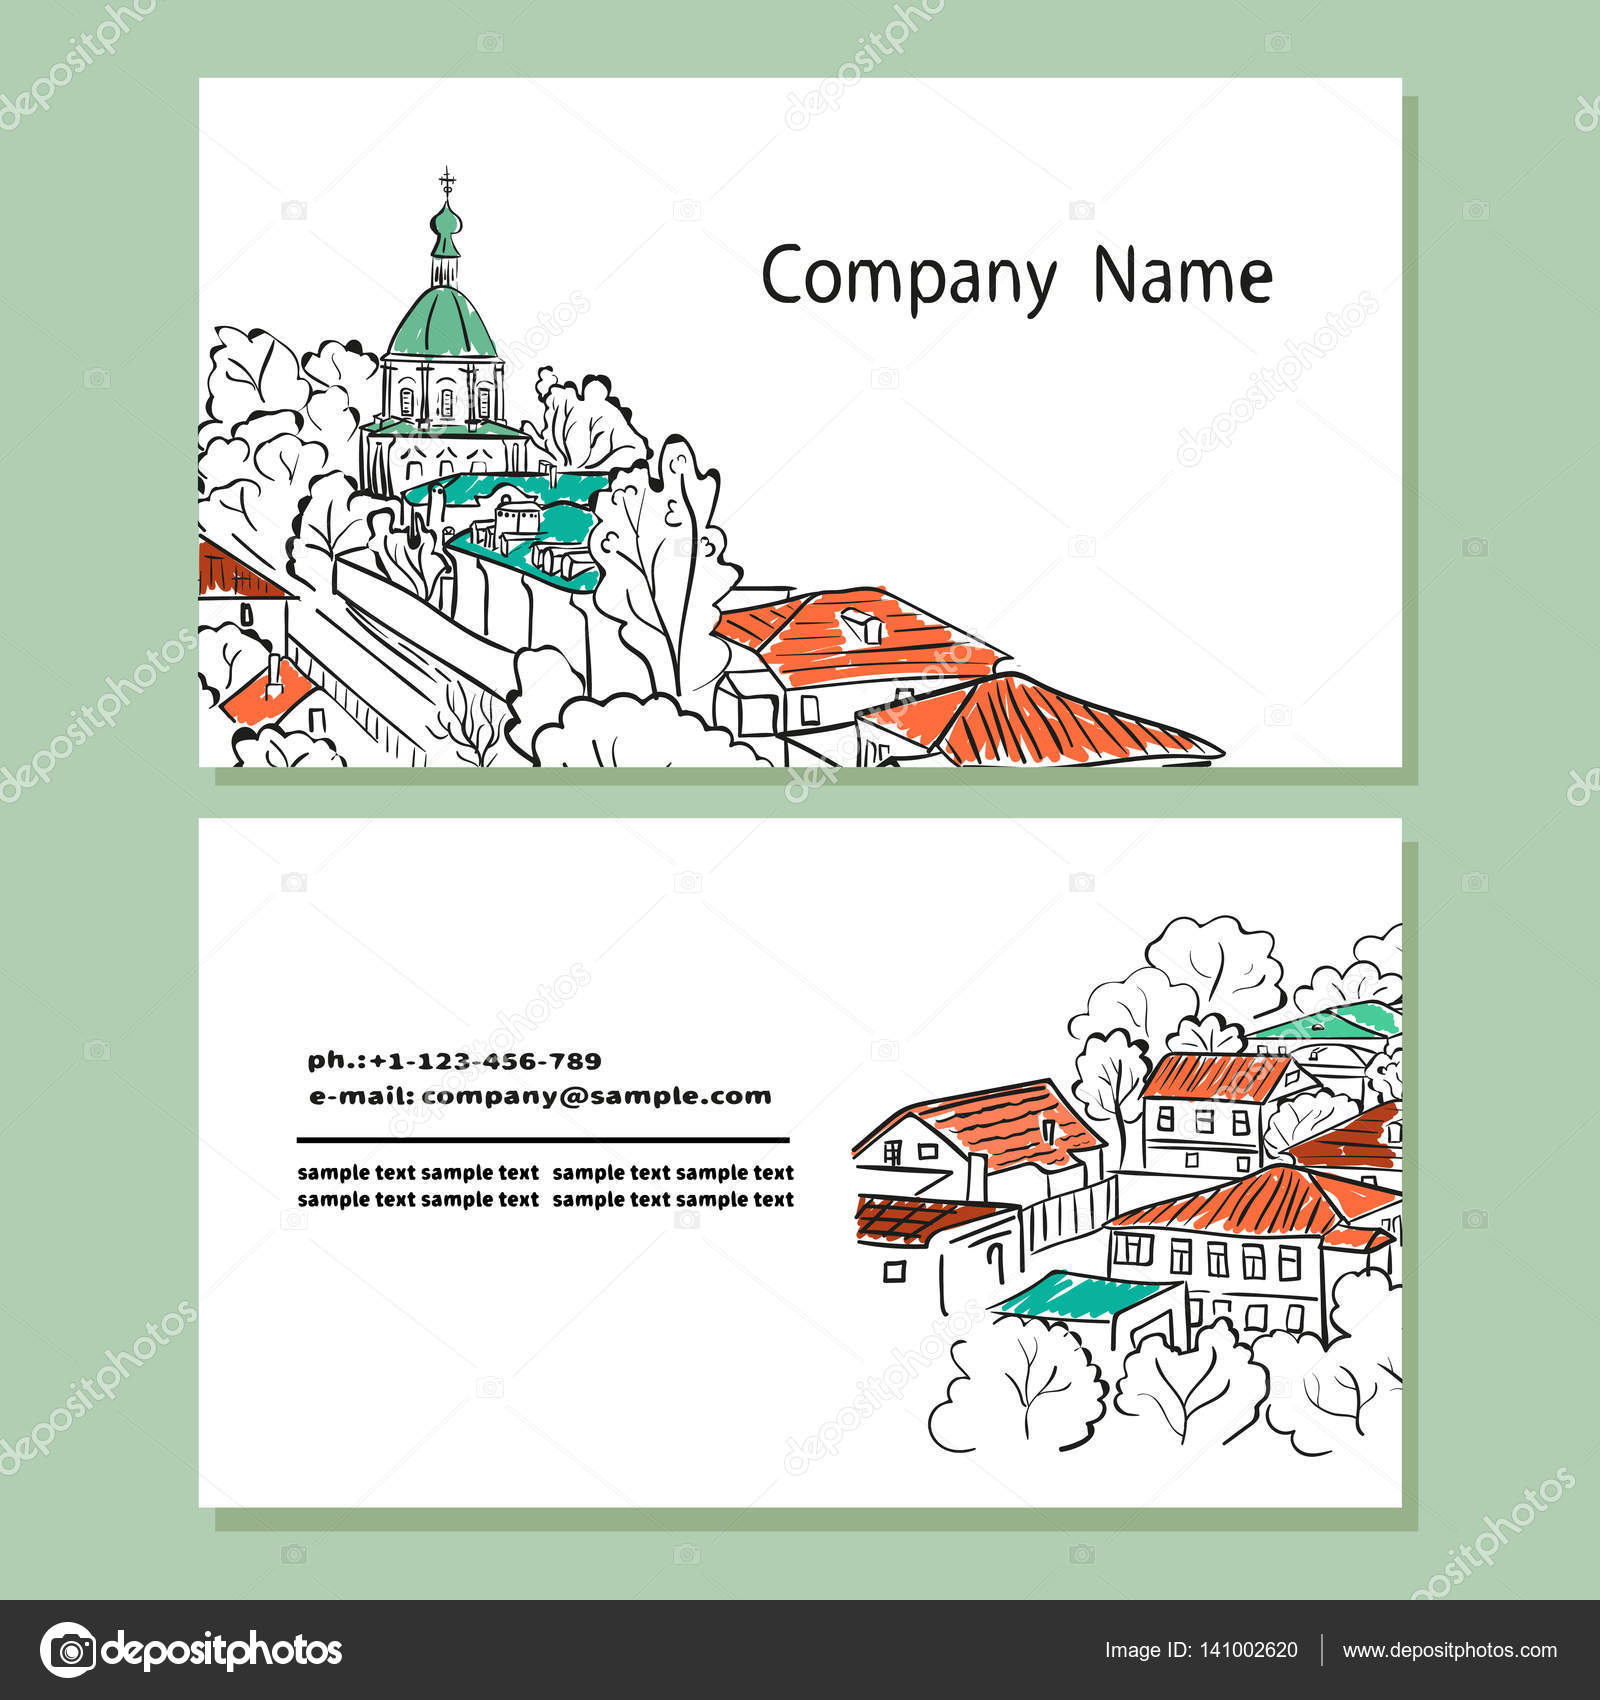 Business Card Design Templates With Sketch Cityscape Stock